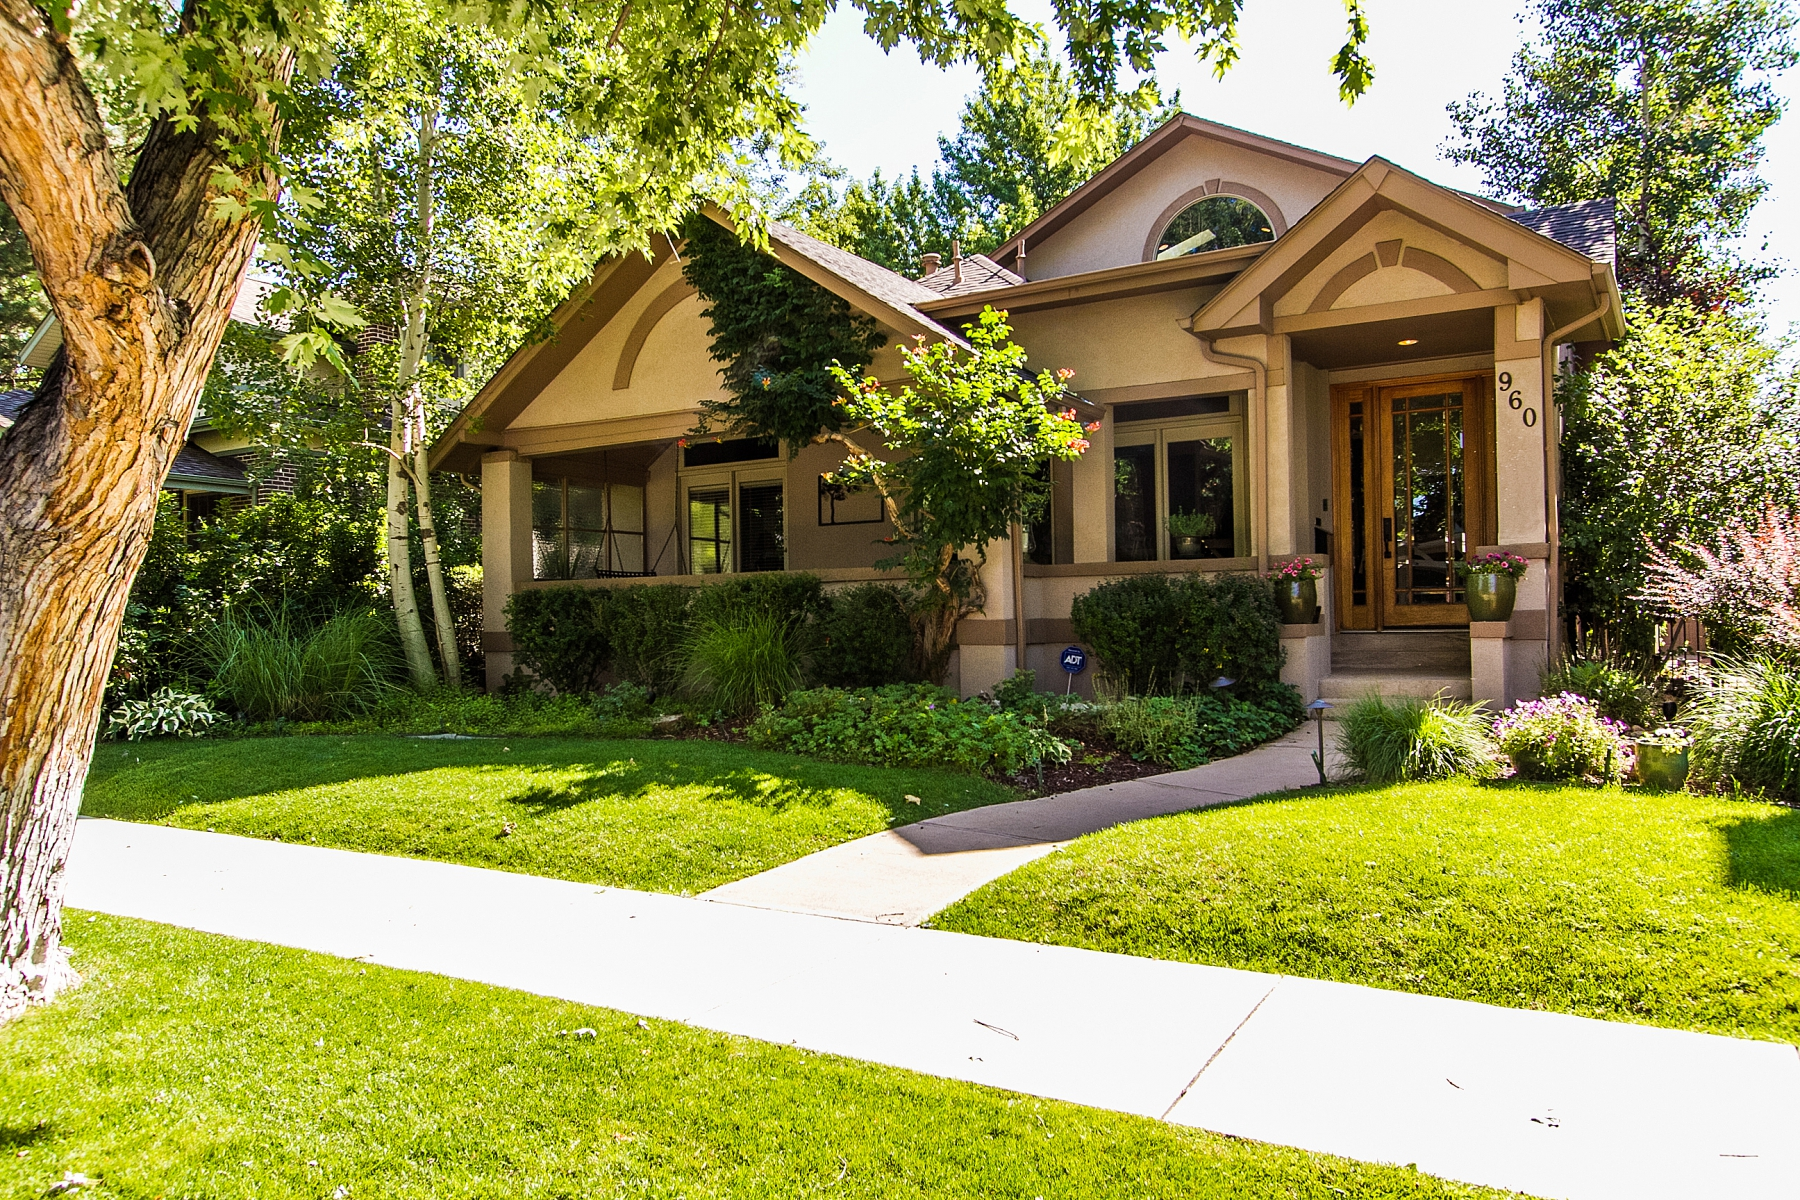 Single Family Home for Sale at Charming Two-Story in Wash Park 960 S. High Street Washington Park, Denver, Colorado 80209 United States